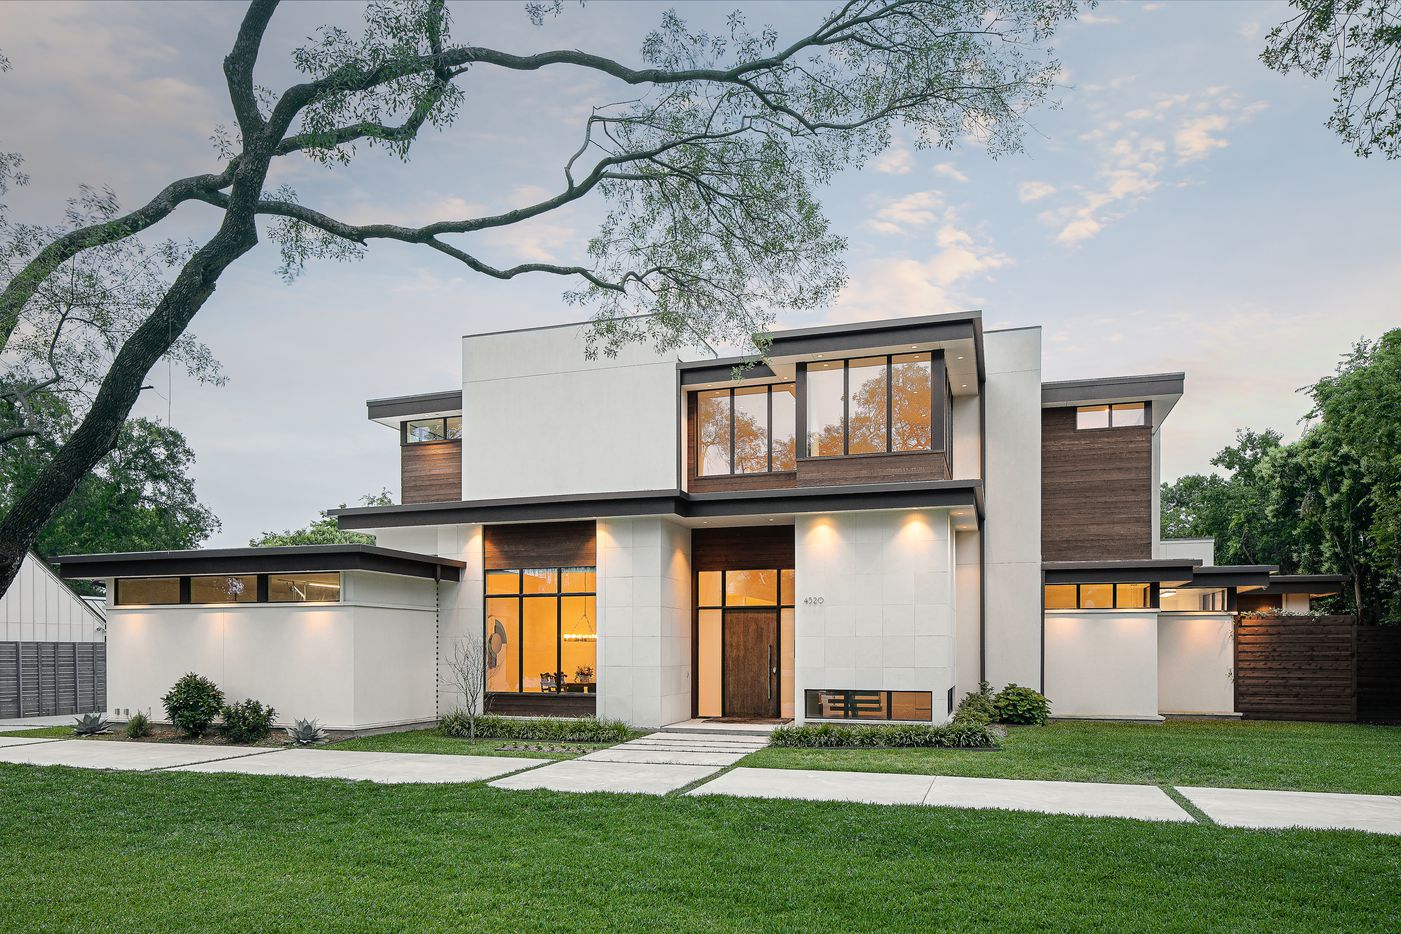 A look at the property at 4520 Northaven Road in Dallas